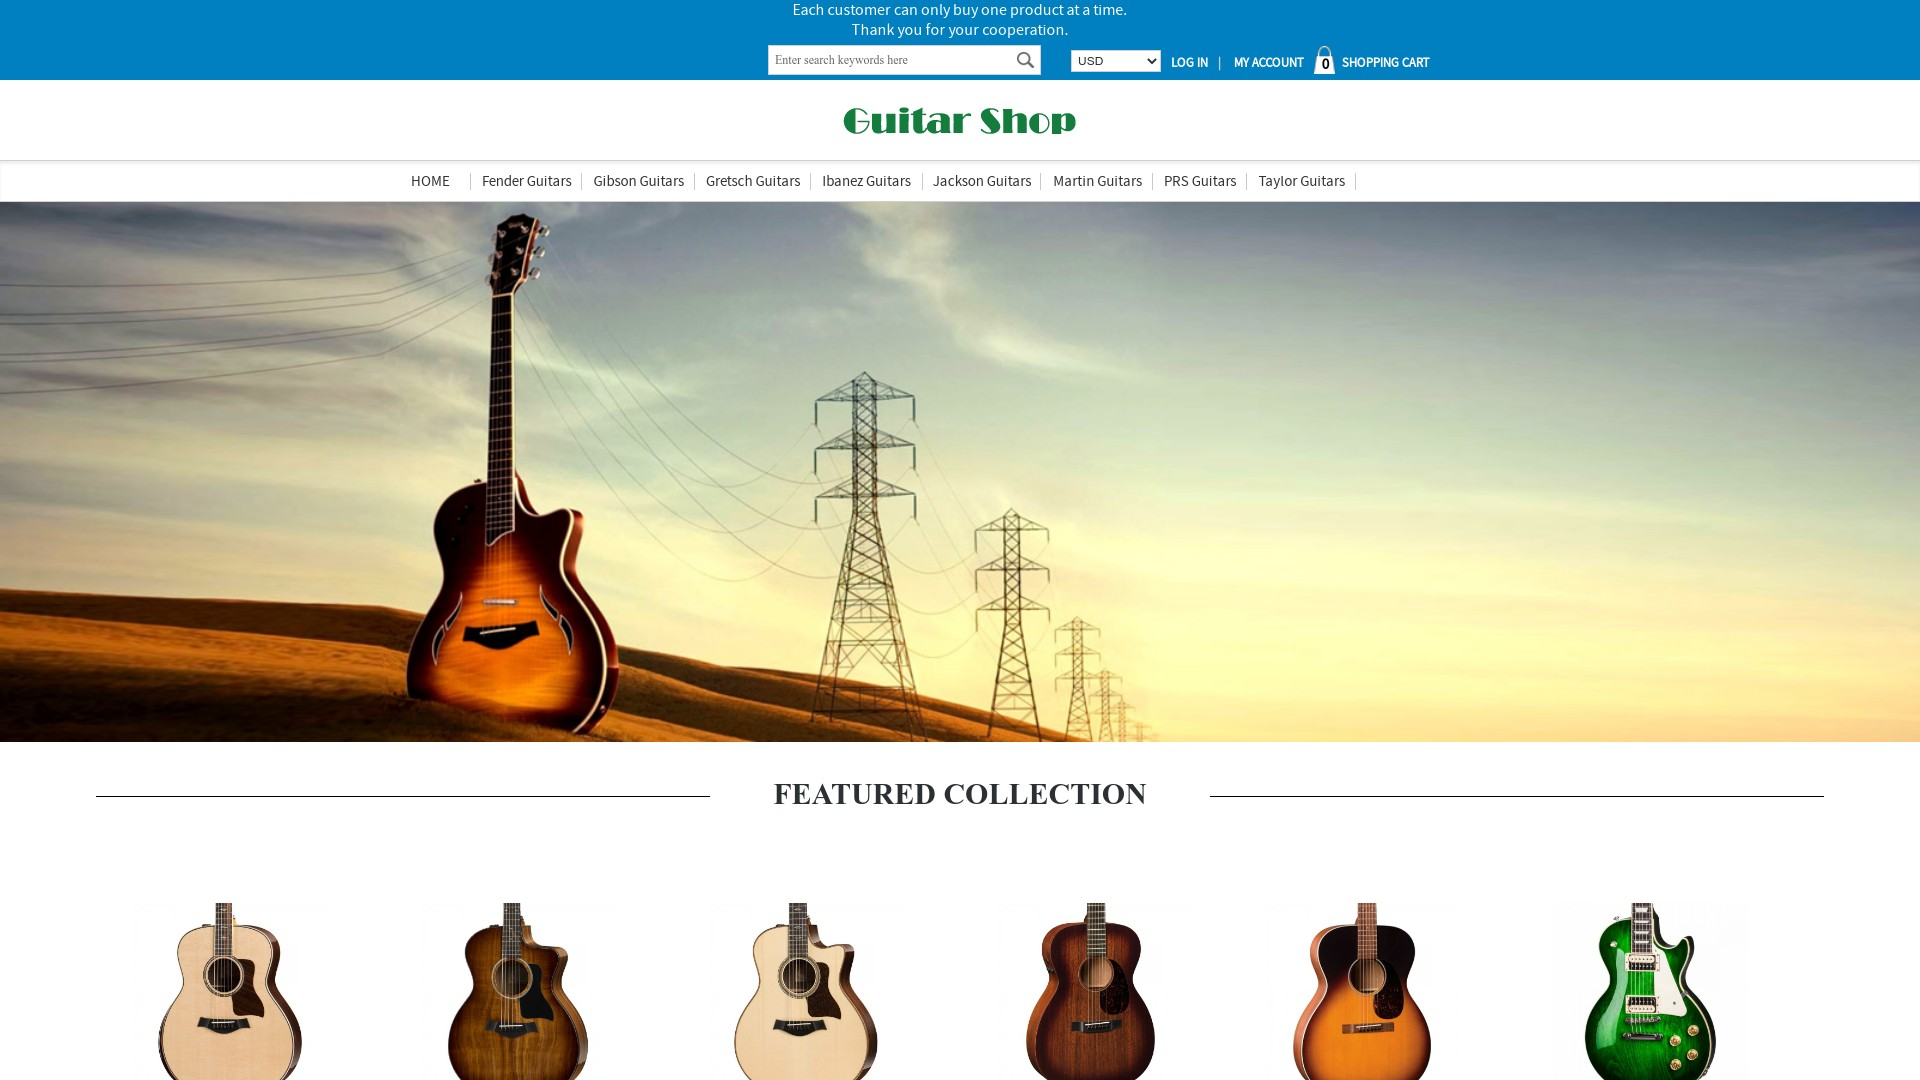 Is Wangkefalv.com a Scam? Review of the Guitar Store